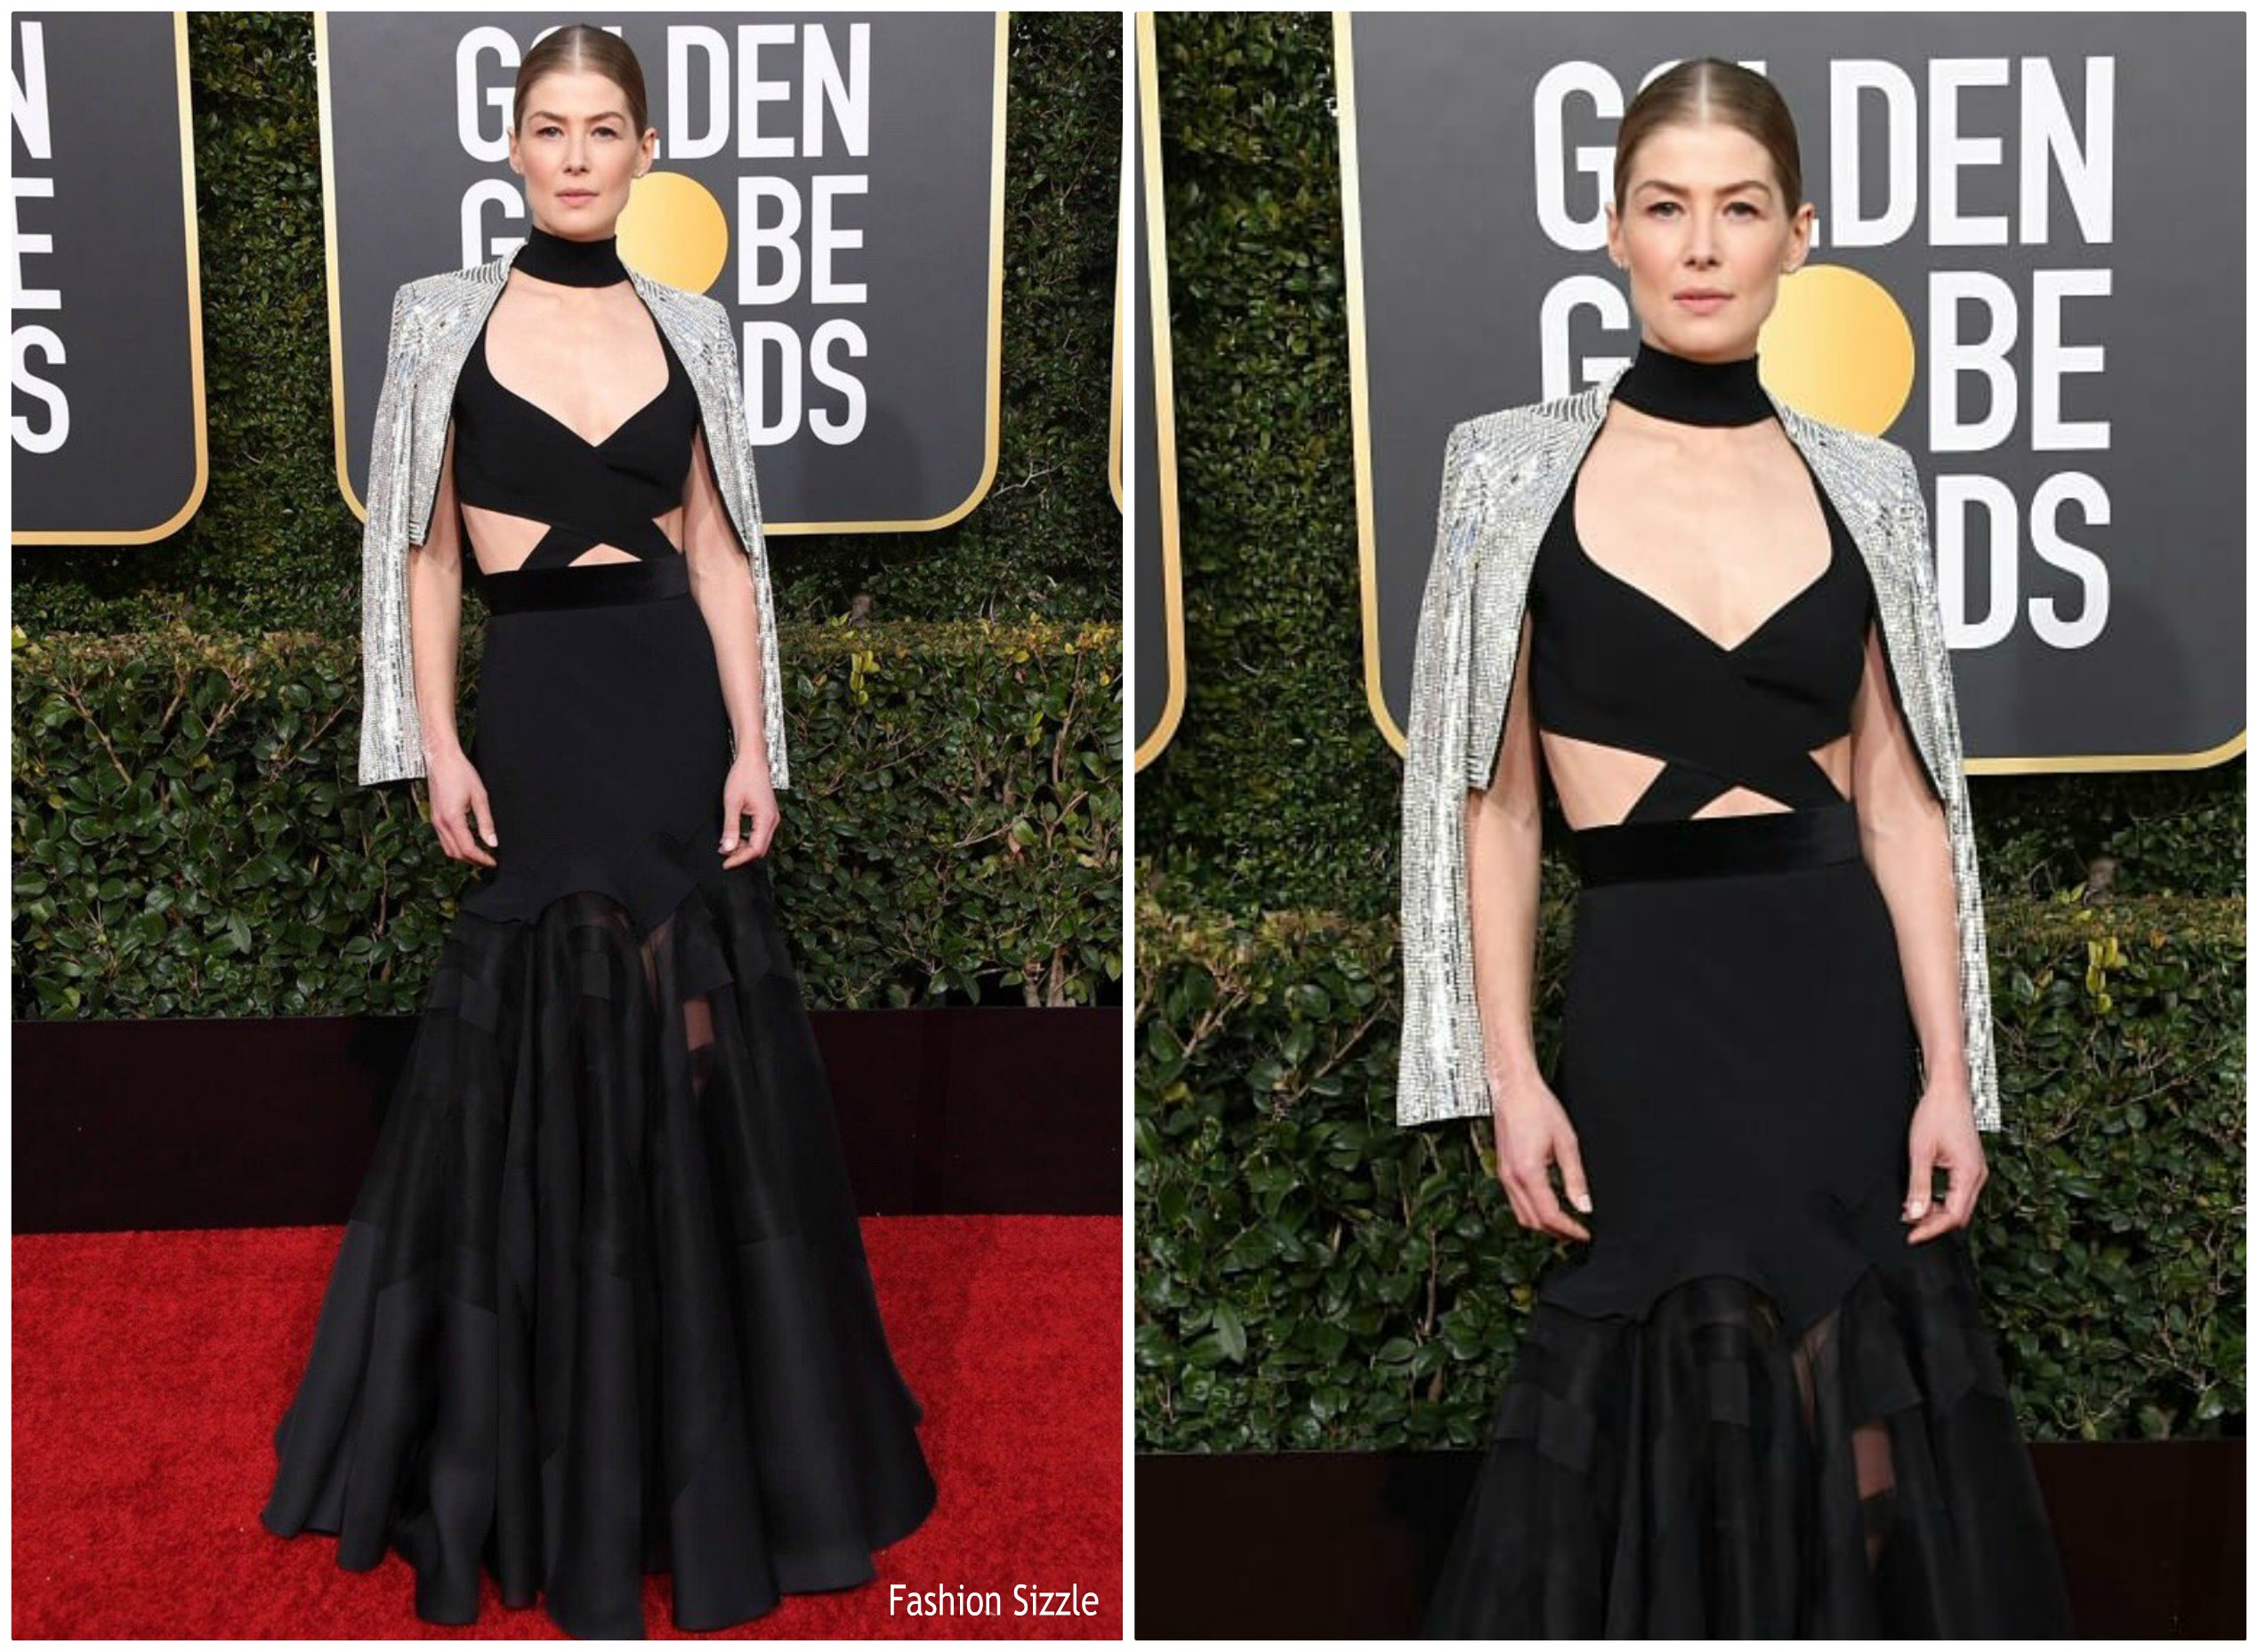 rosamund-pike-in-givenchy-haute-couture-2019-golden-globe-awards